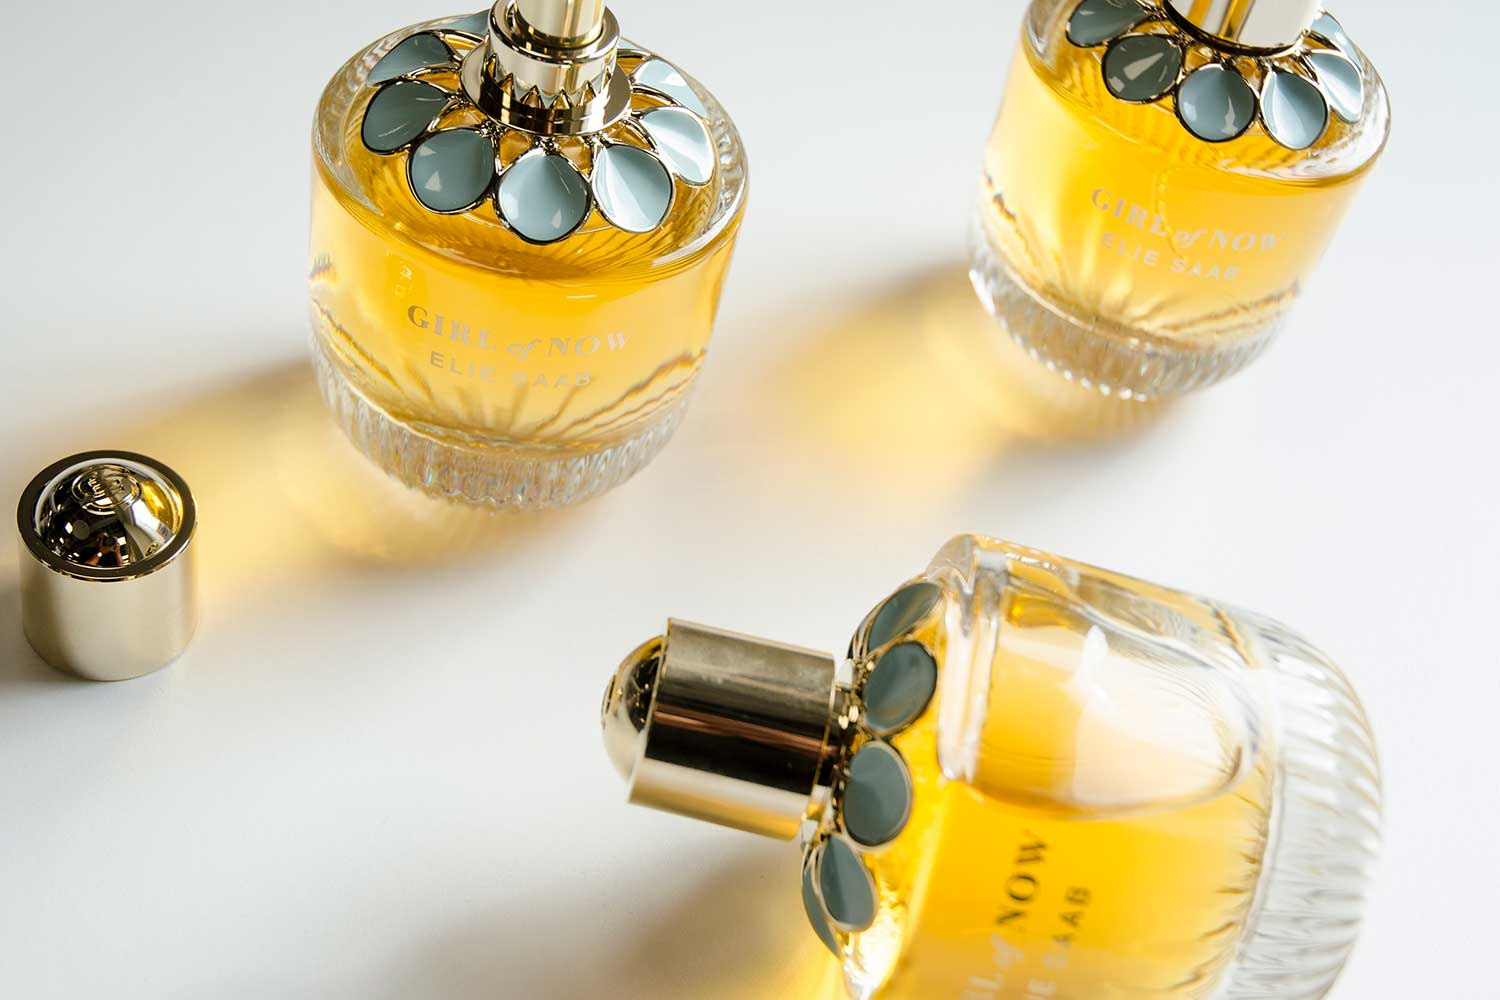 Best Perfume For Women Find Your Signature Scent